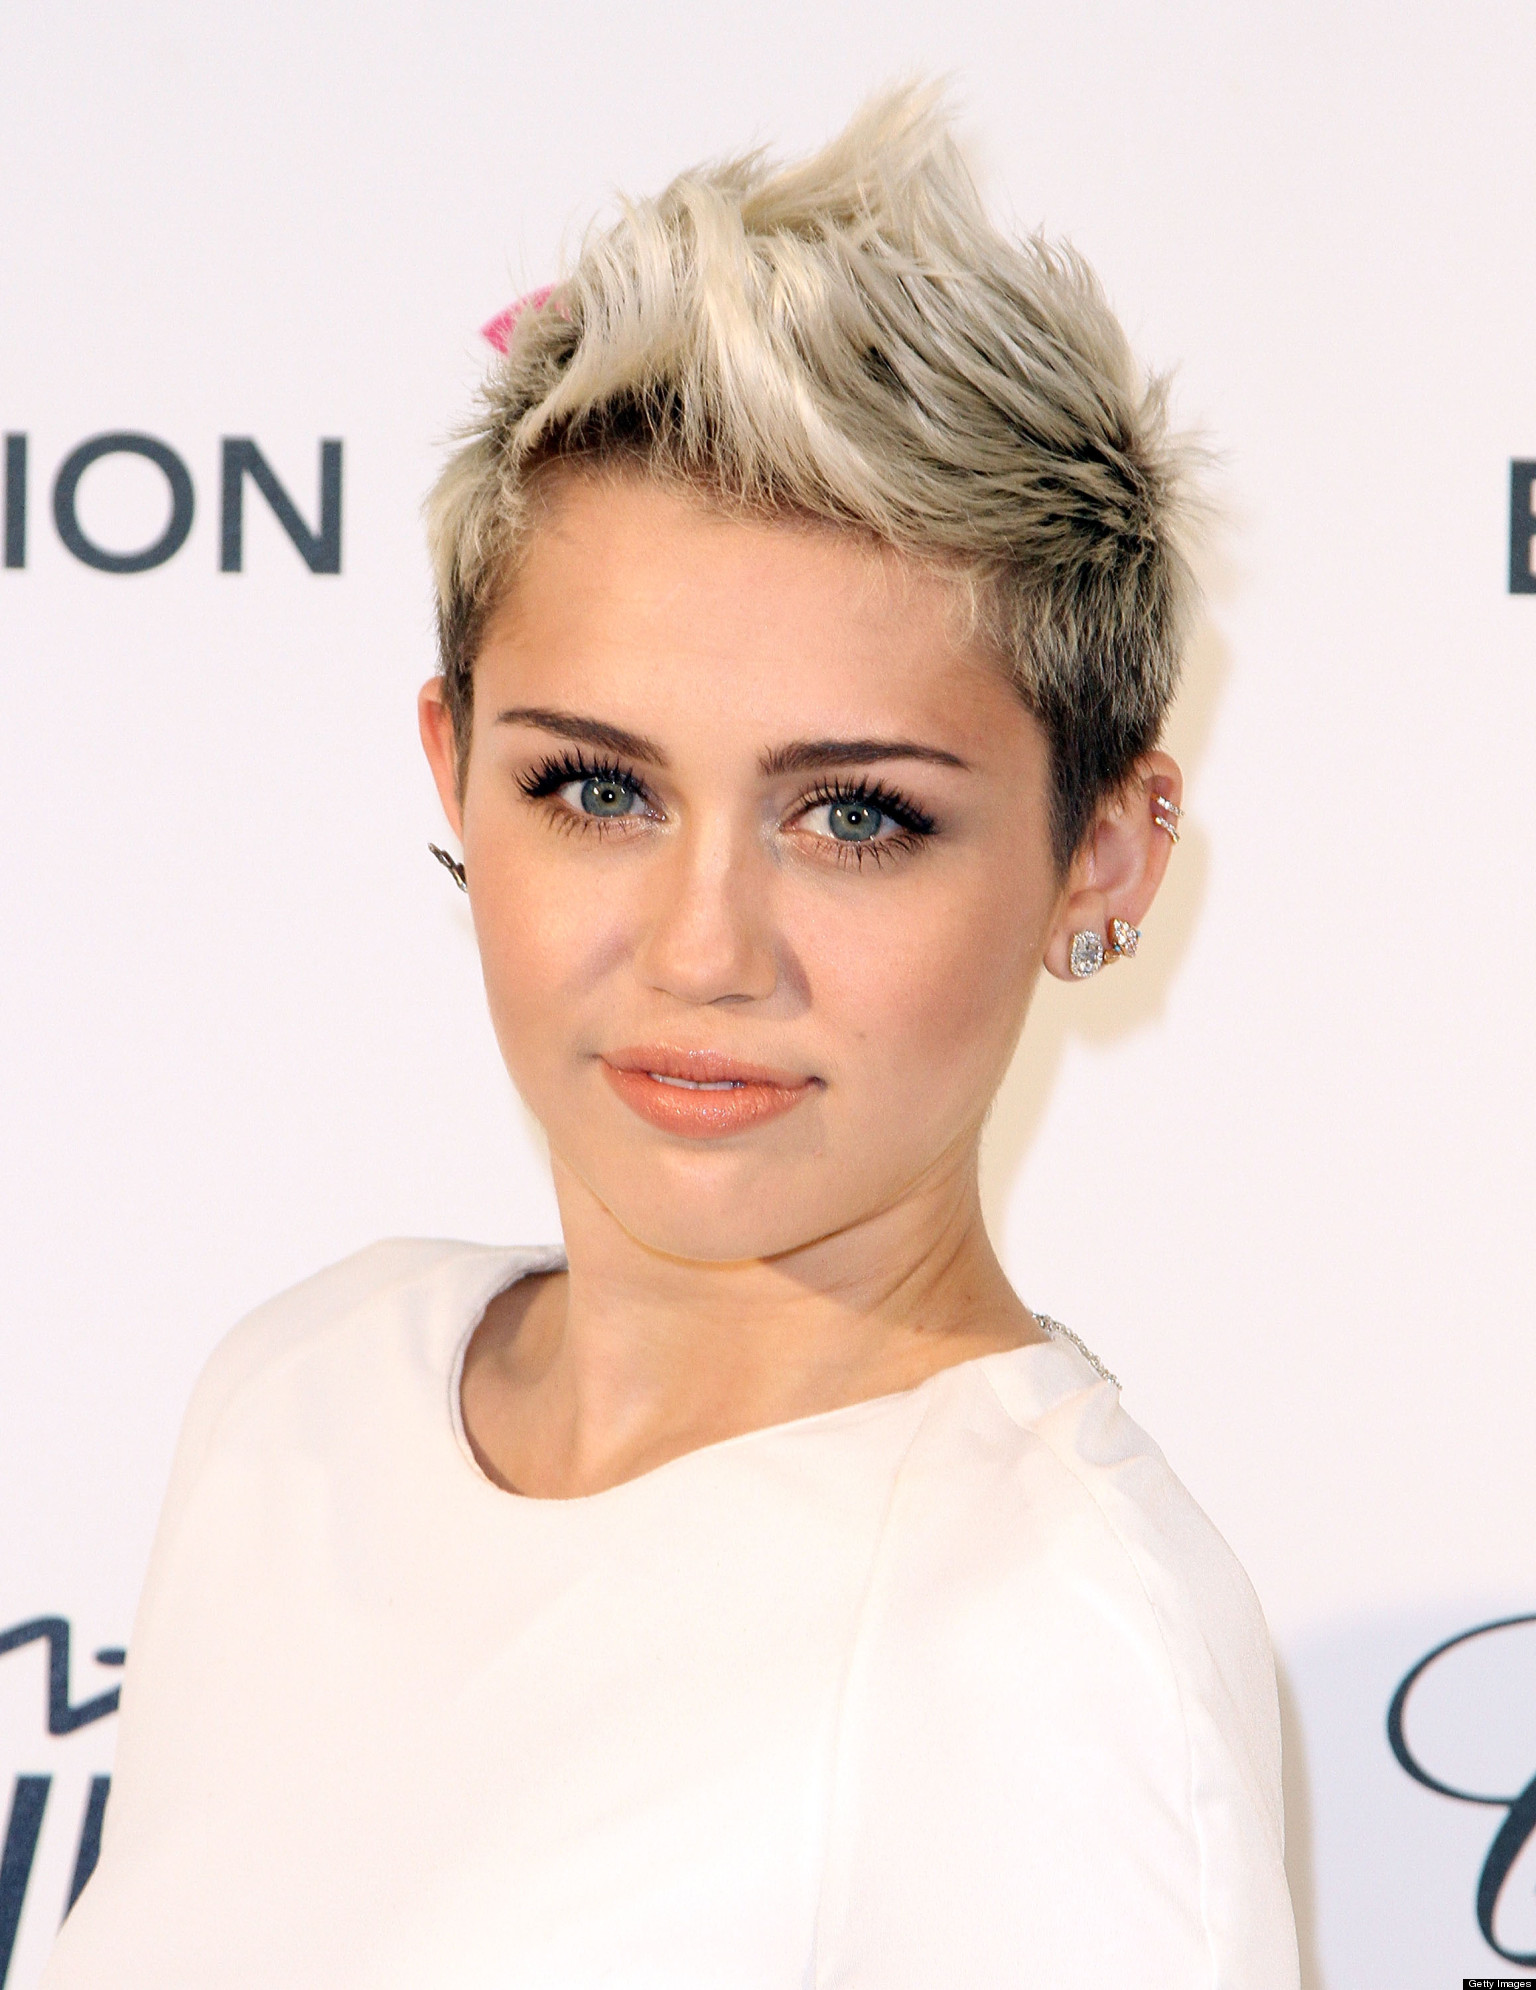 Miley Cyrus Joins Instagram, Reveals She's Number One On ...